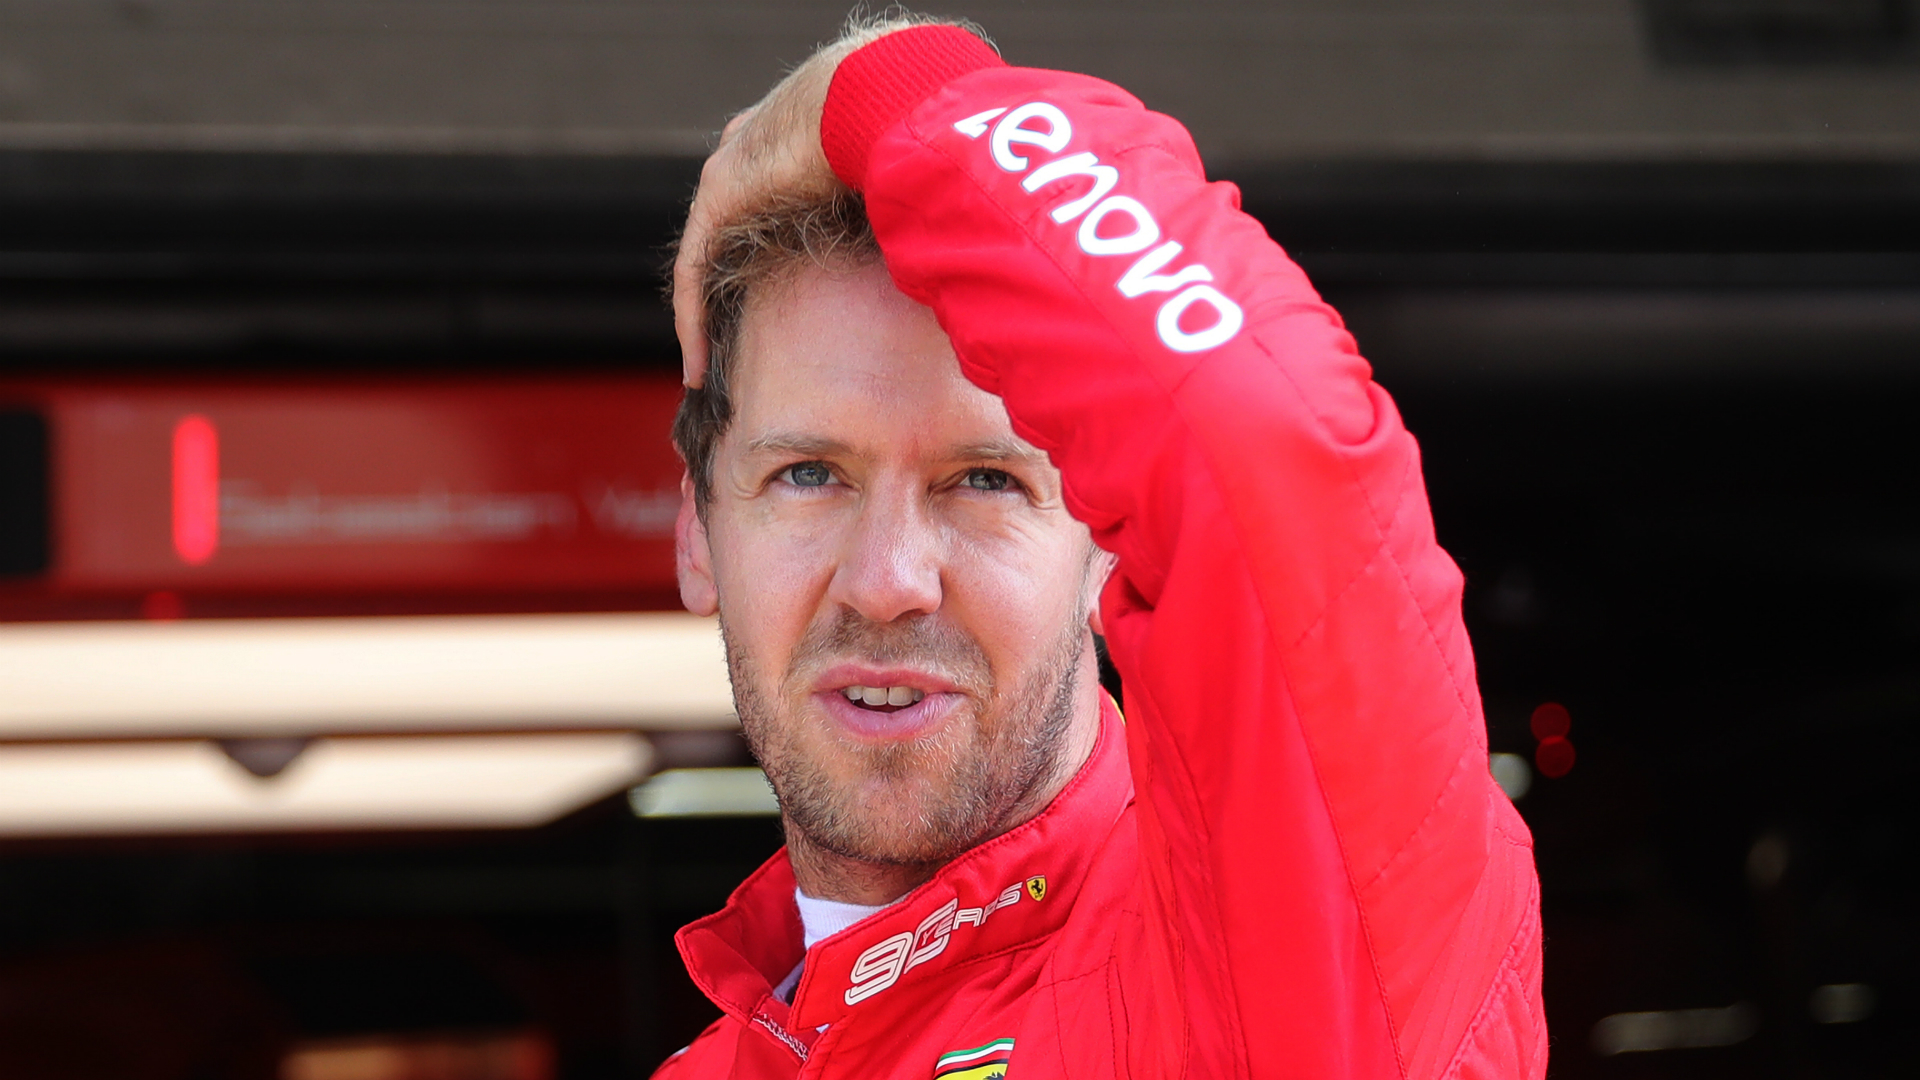 Vettel 'one race away' from turning season around - Ricciardo